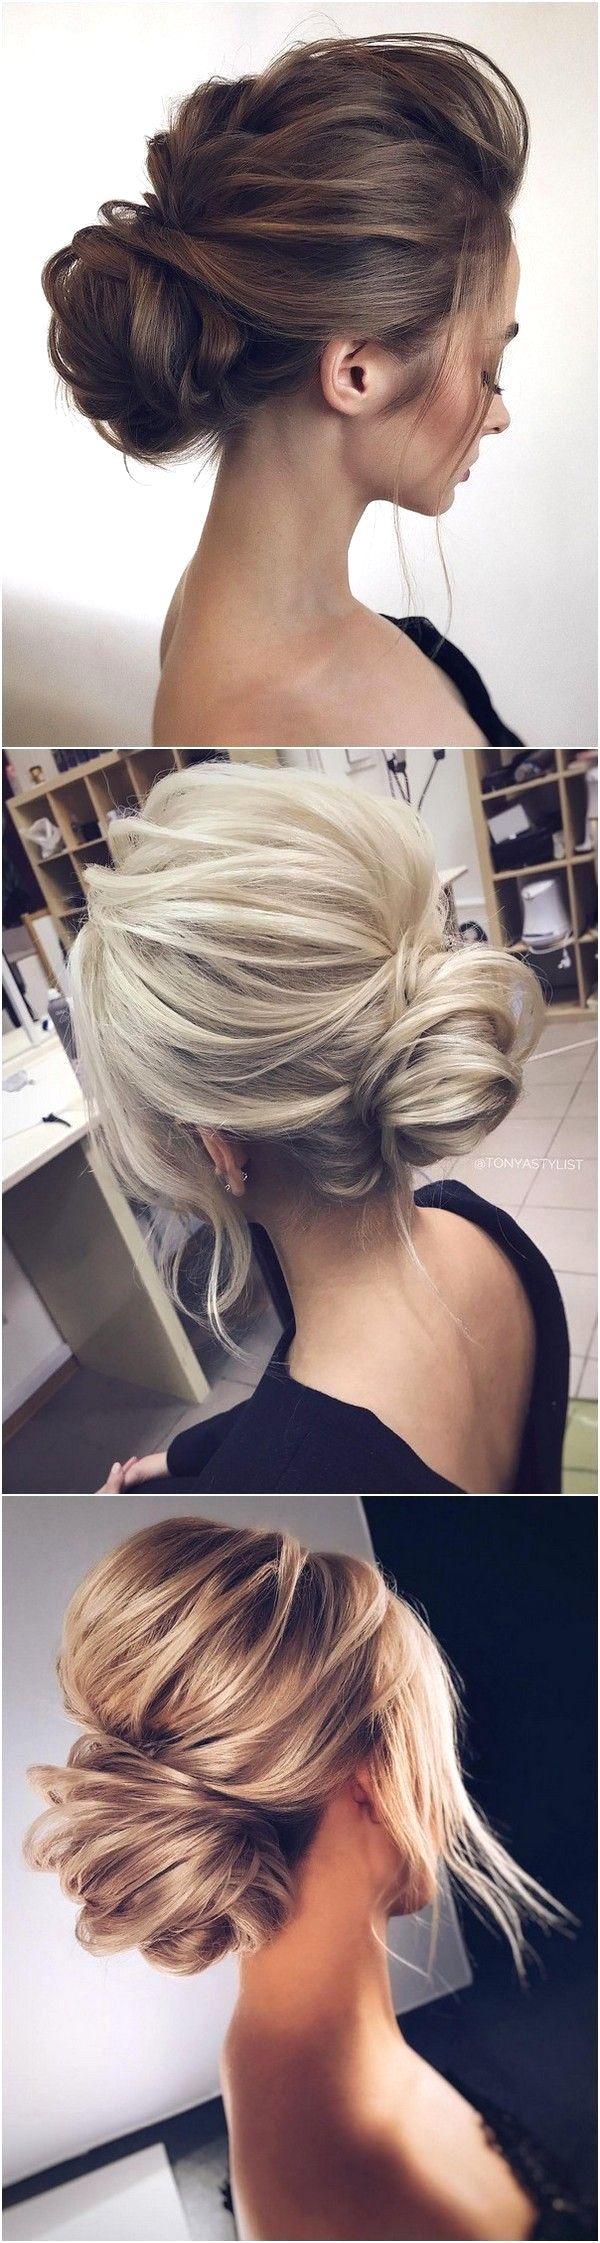 Click Visit Link Above For More Options Hair Styles Elegant Hairstyles Long Hair Styles